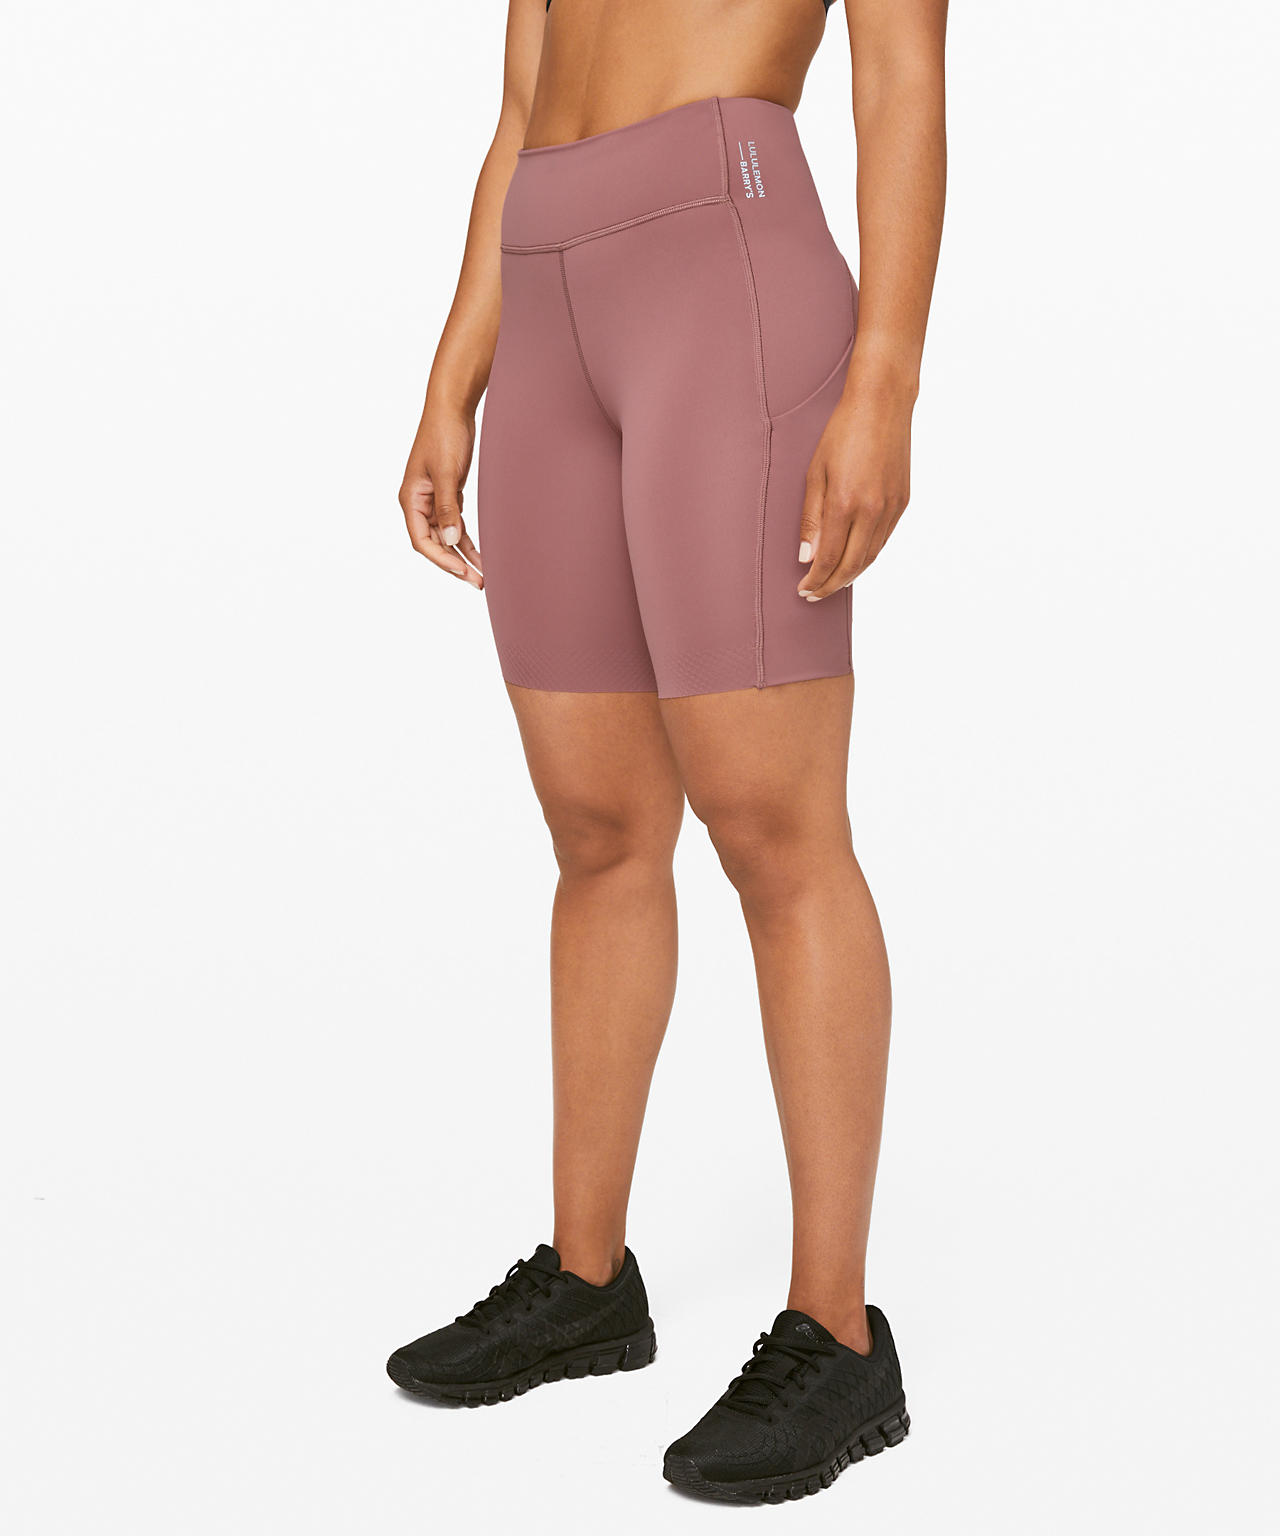 "Stronger as One High-Rise Short 8""  lululemon X Barry's"